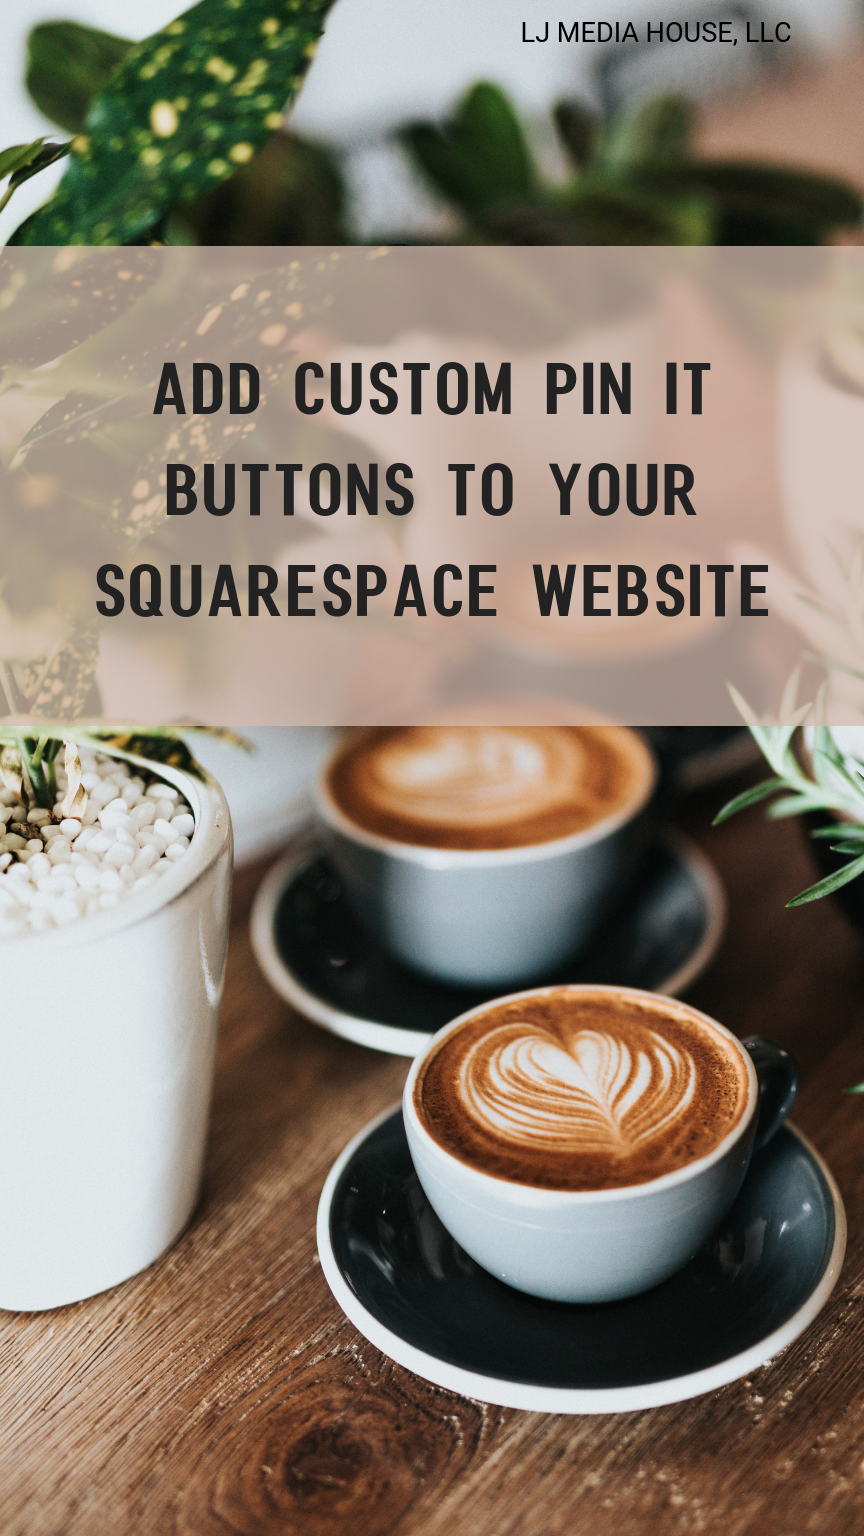 Add custom pin it buttons to your website